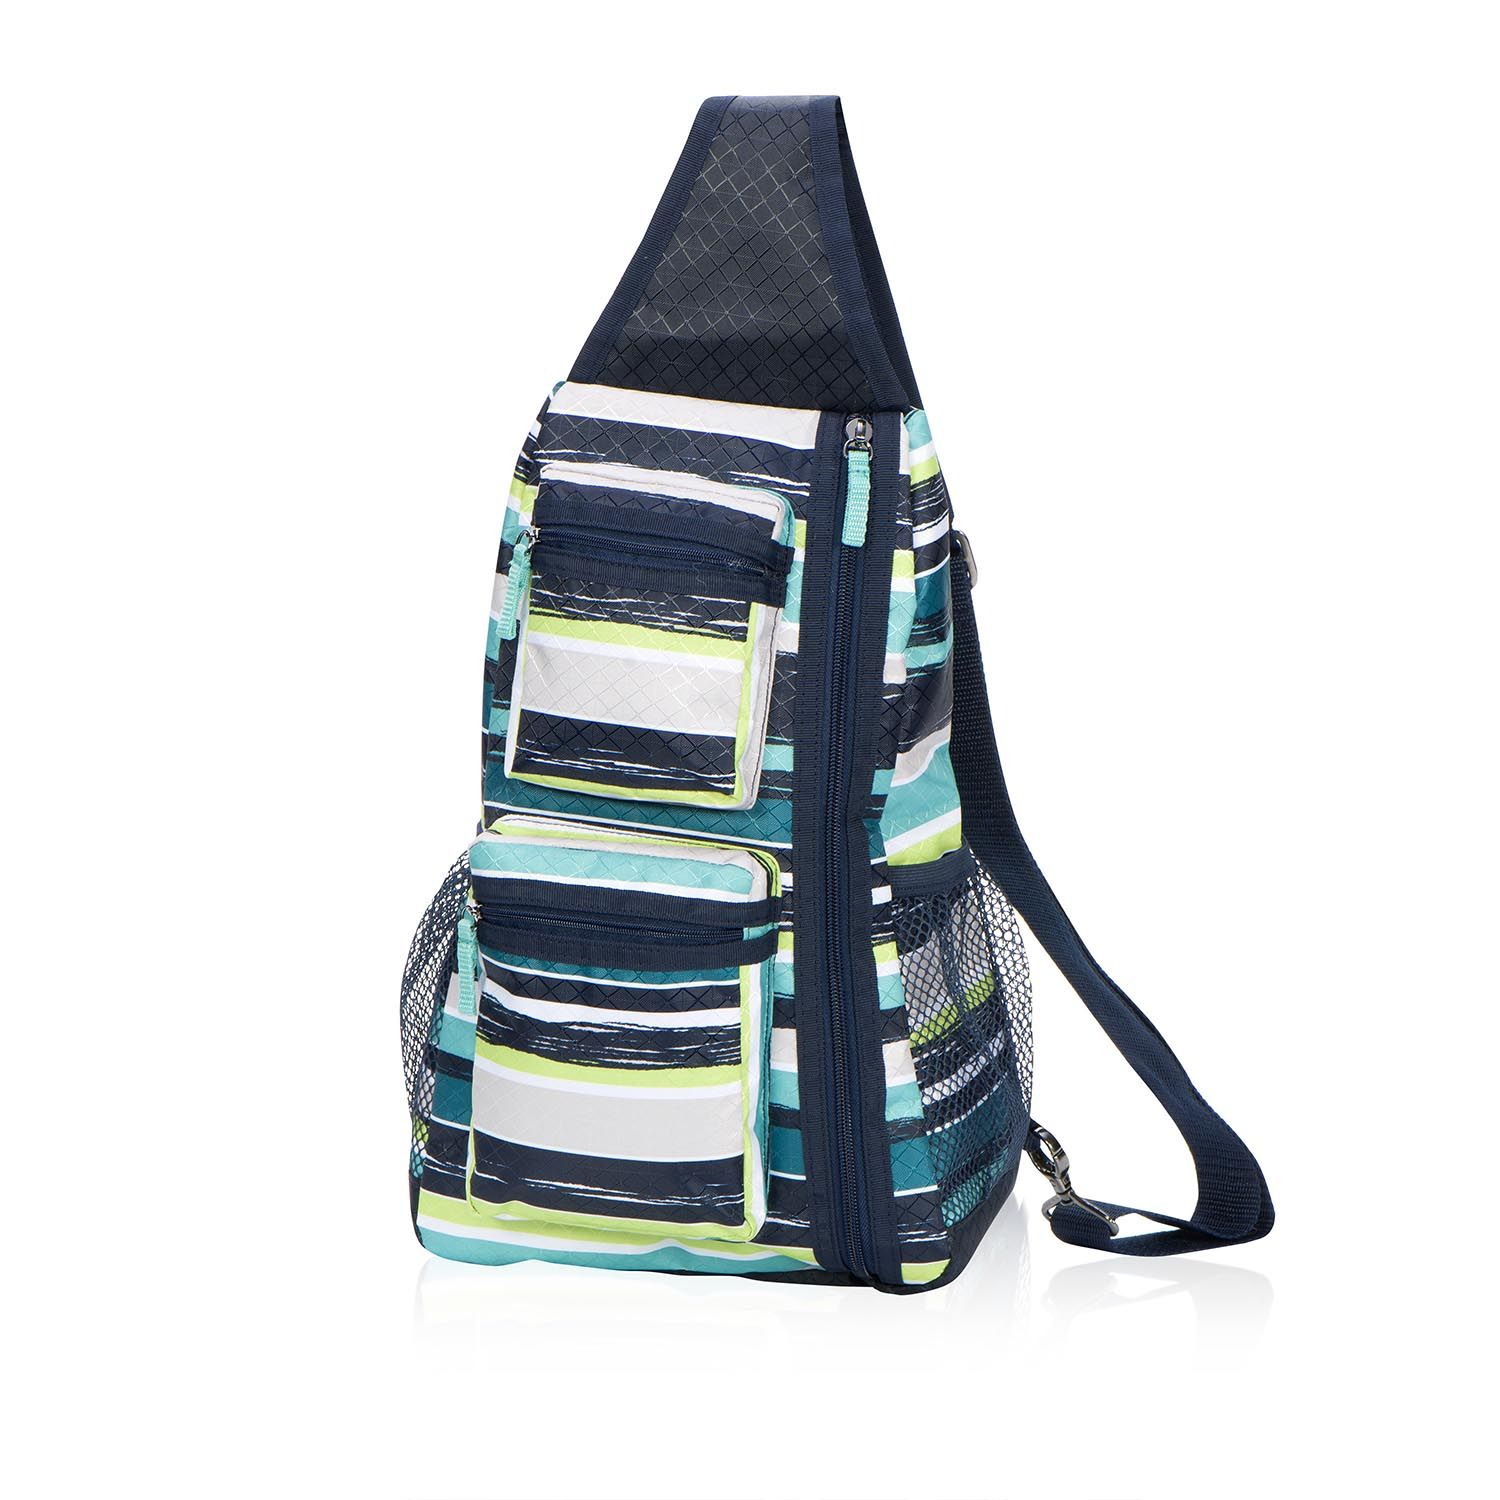 Sling-Back Bag in Sea Stripe for $45 - So easy to grab and go ...